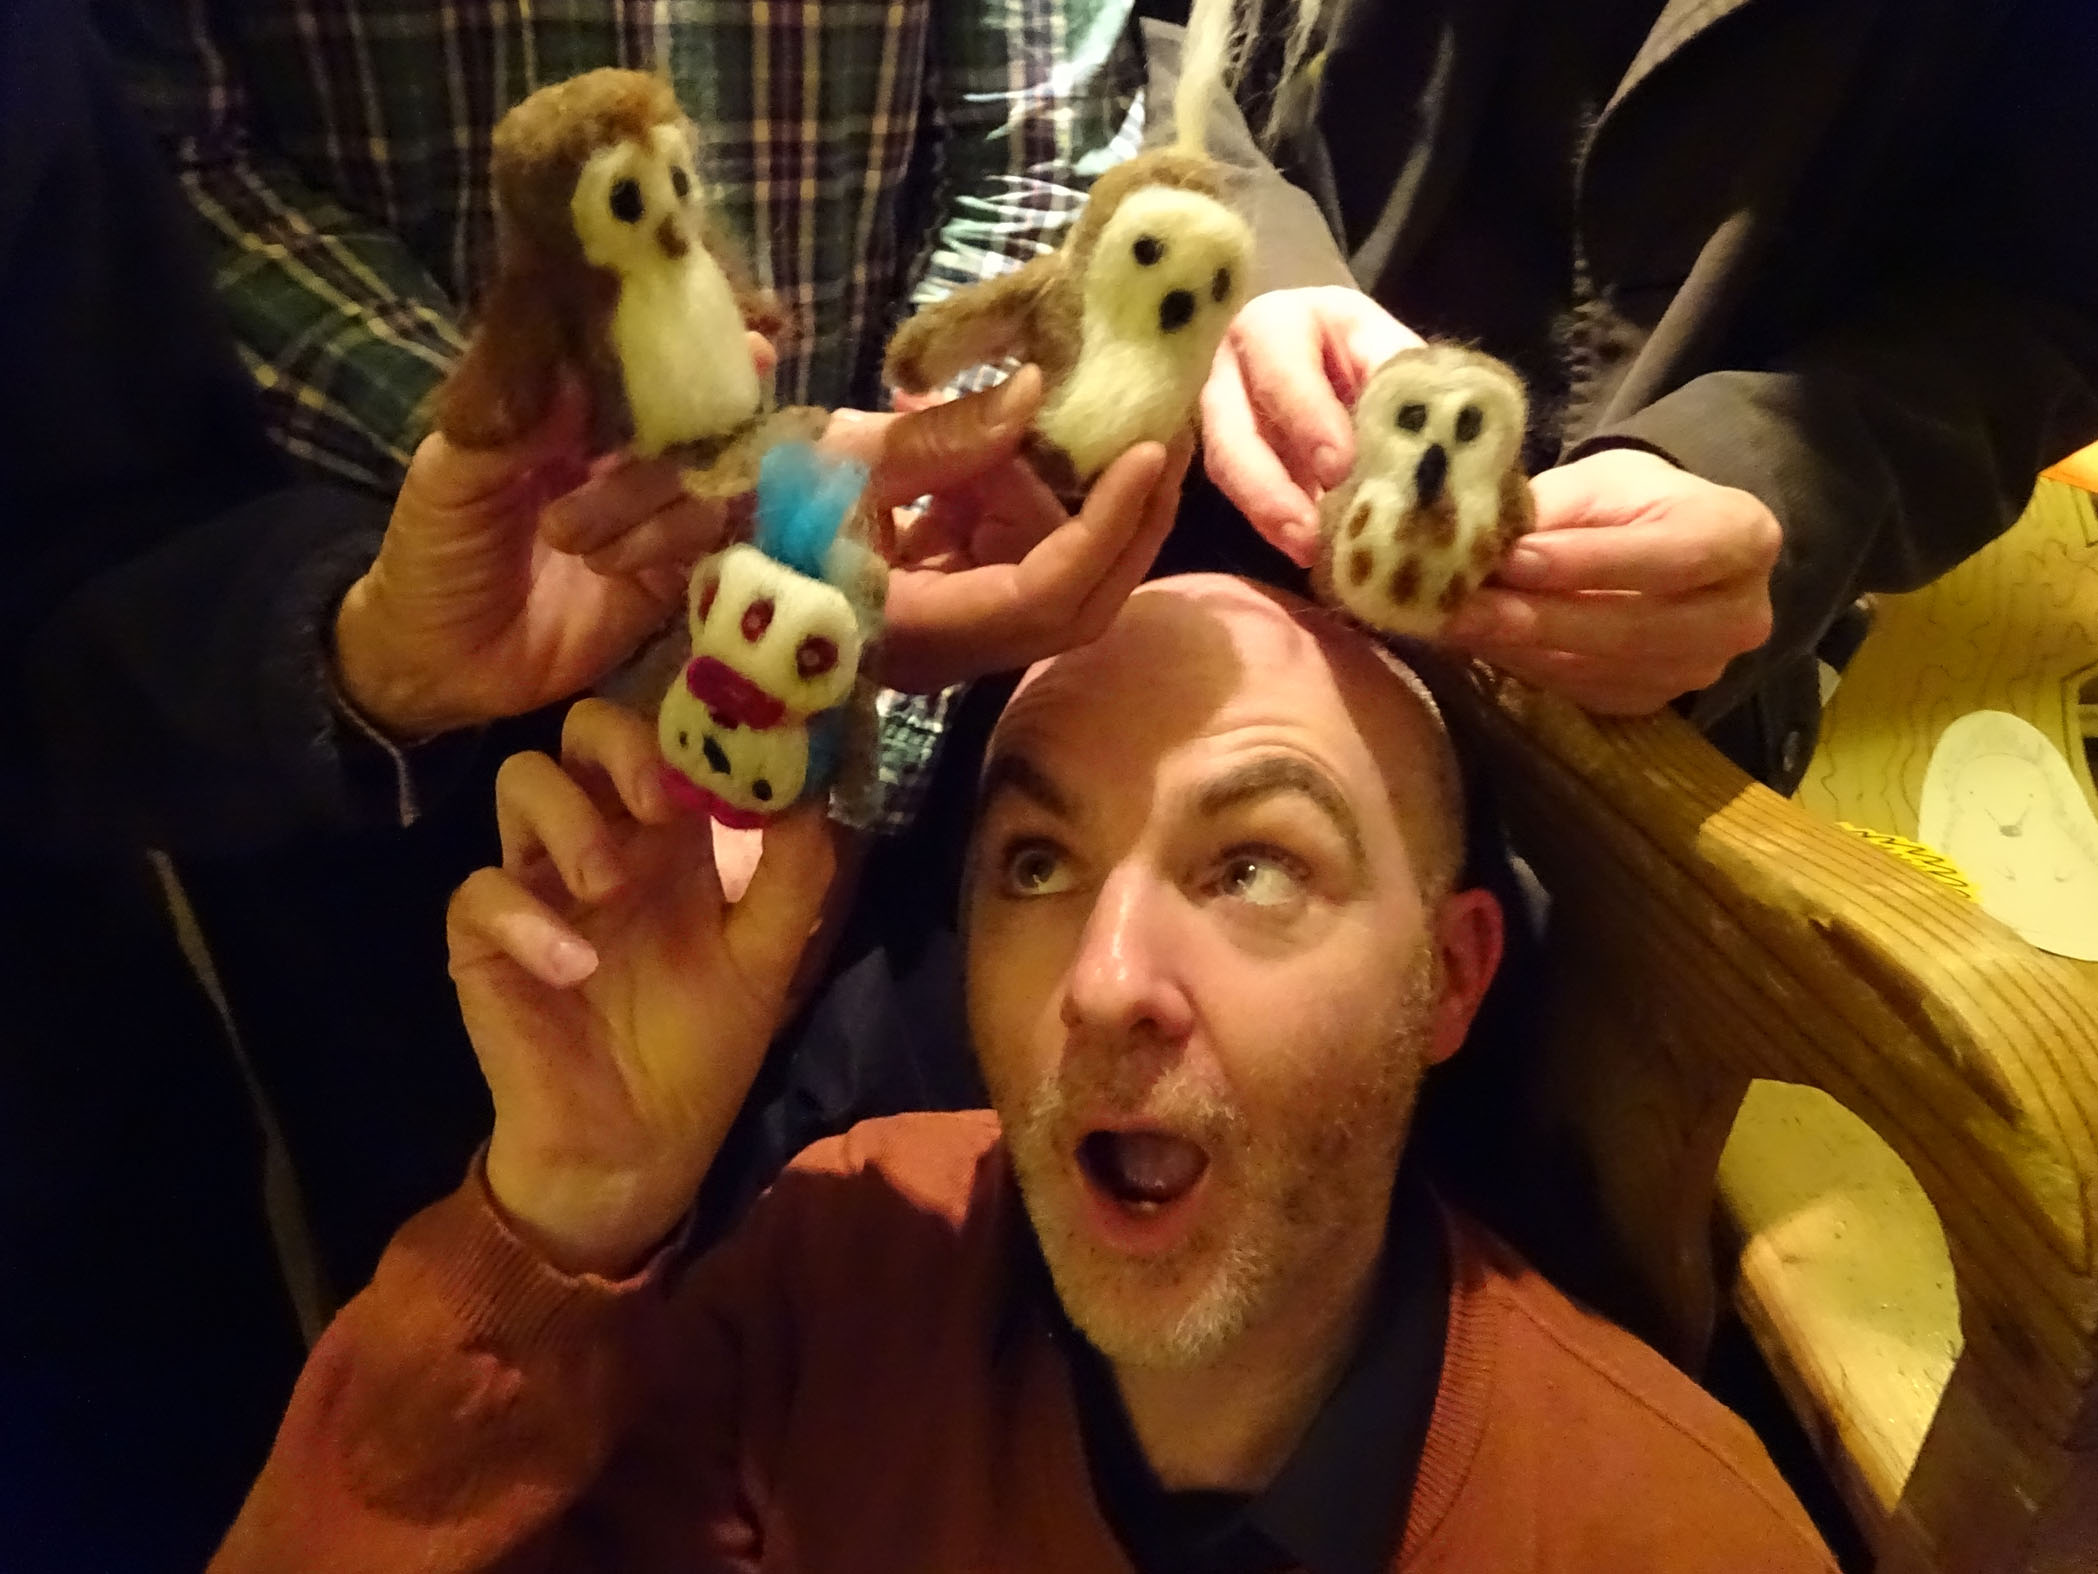 Phil attacked by felt creatures